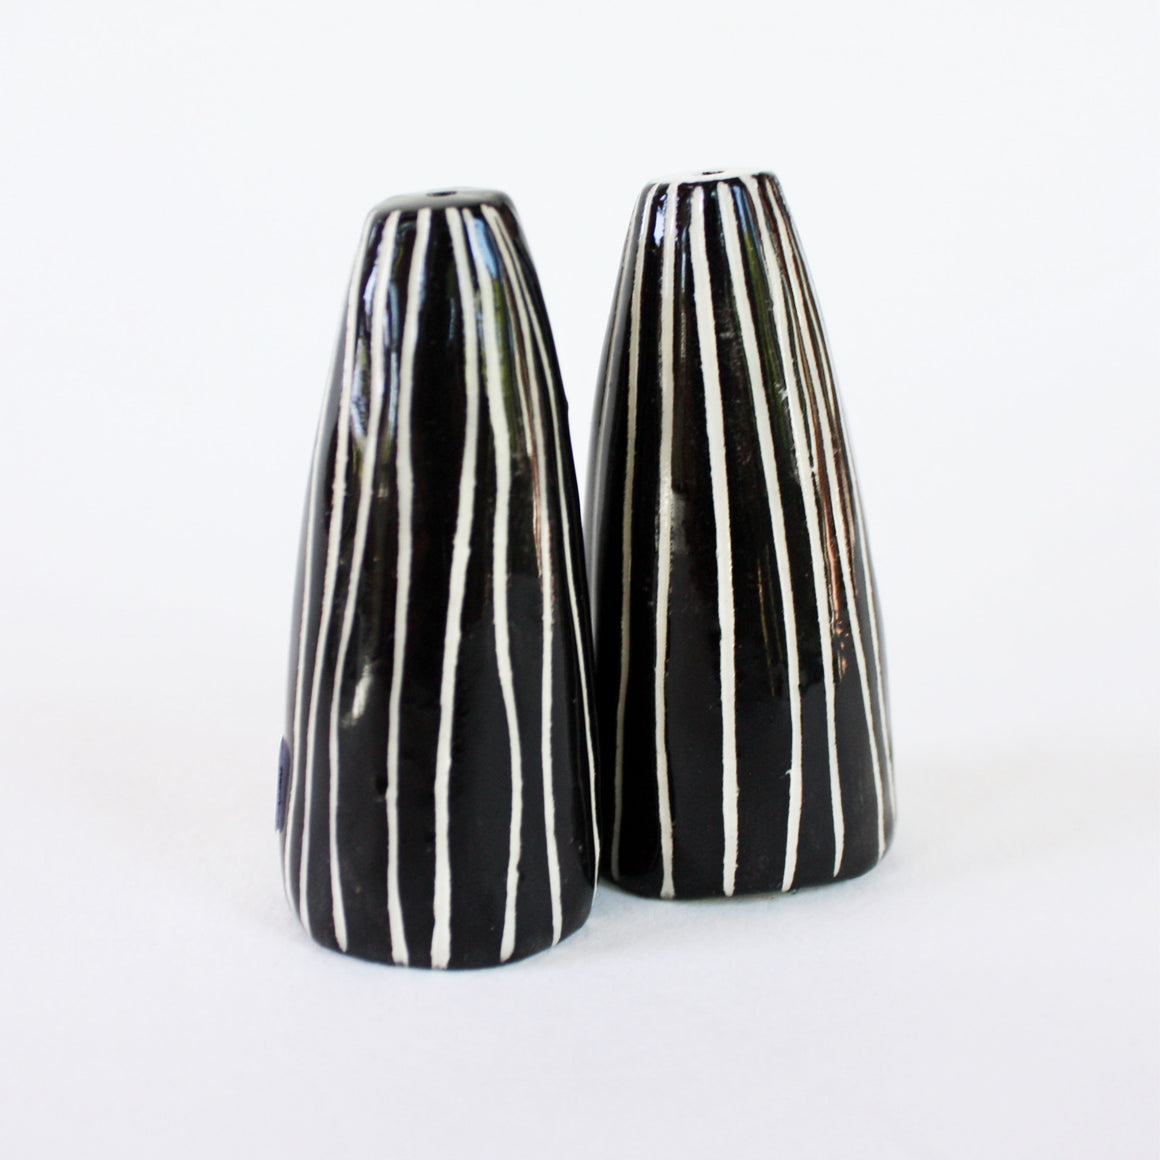 Pair of black and white salt and pepper shakers with skinny white stripes